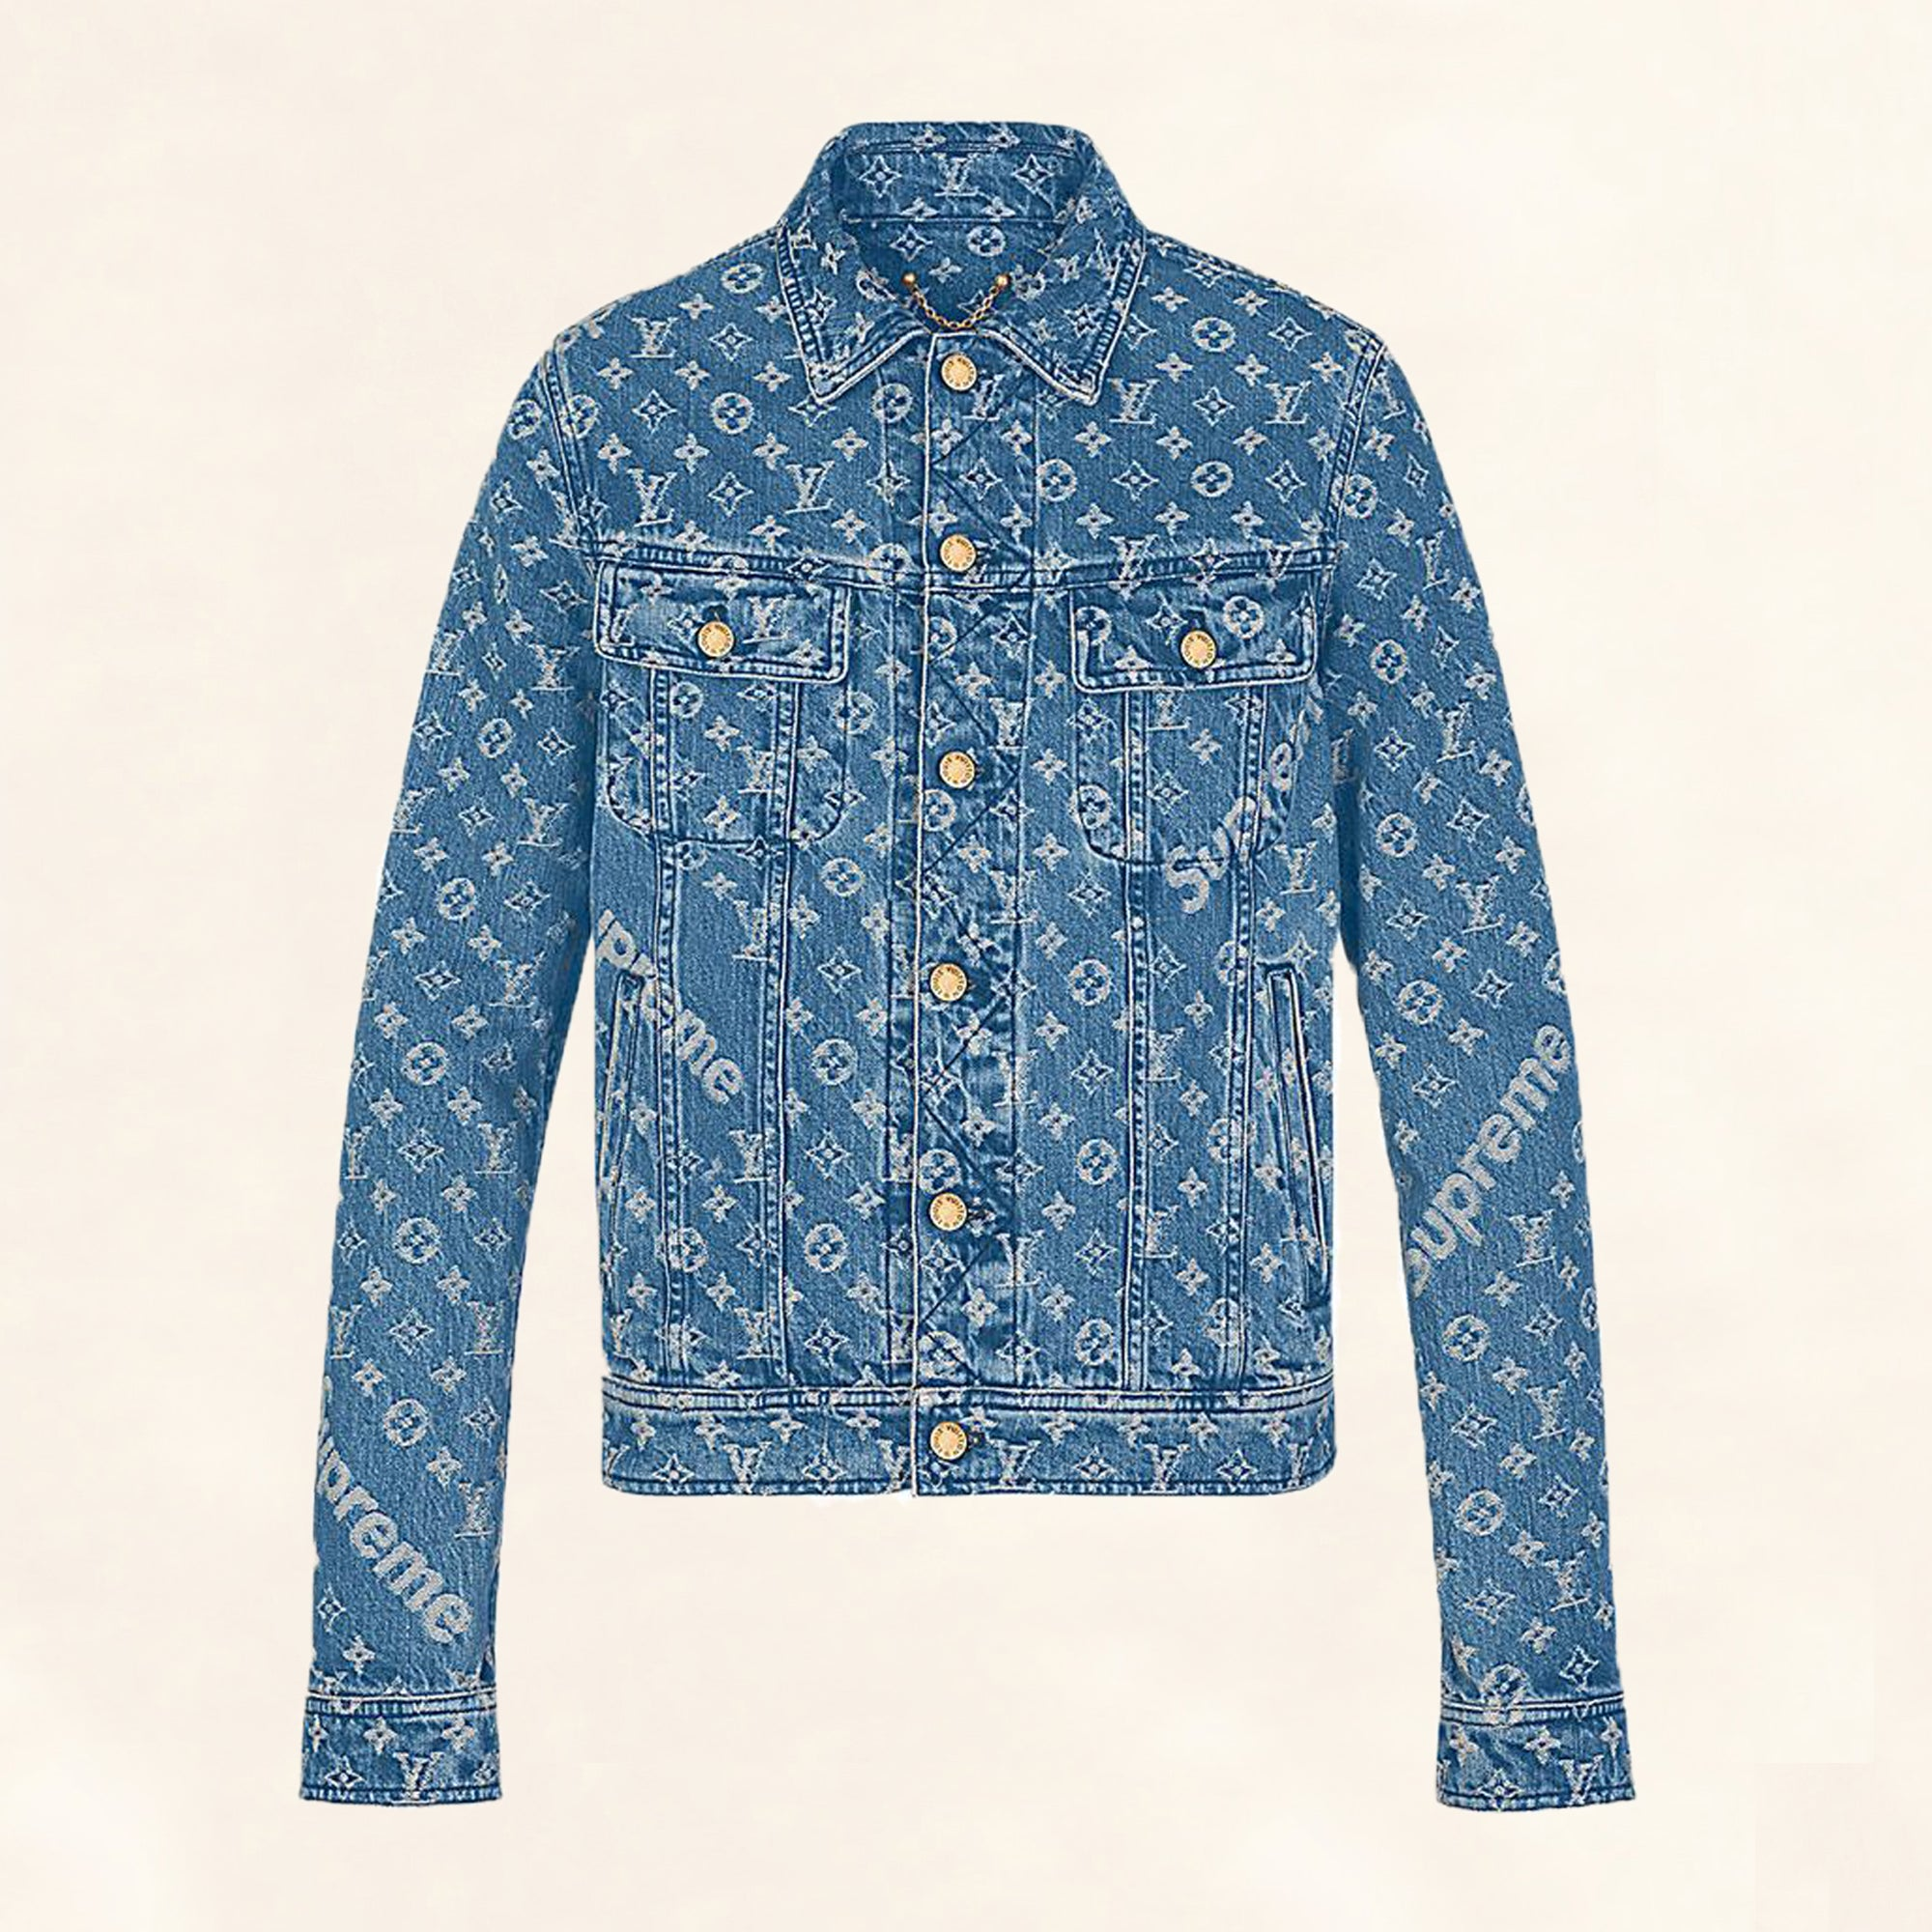 707f8aec7b5 Louis Vuitton | Supreme Denim Monogram Jacket | 56